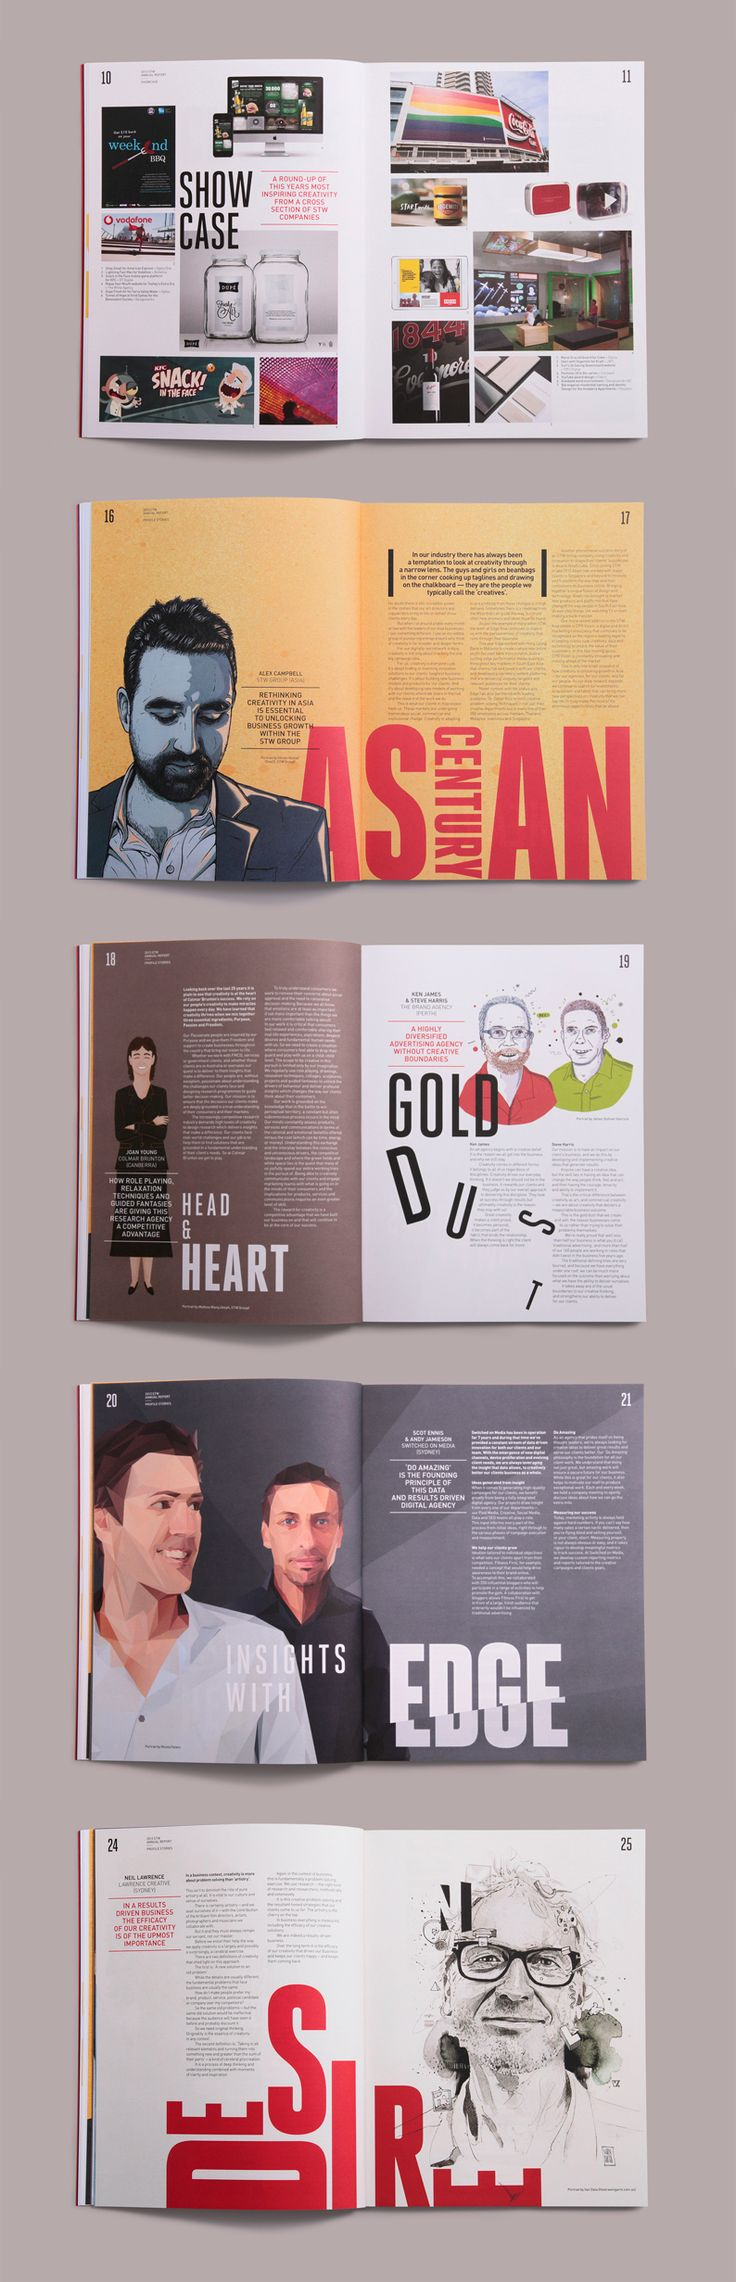 STW Group | Annual Report & Event on Behance